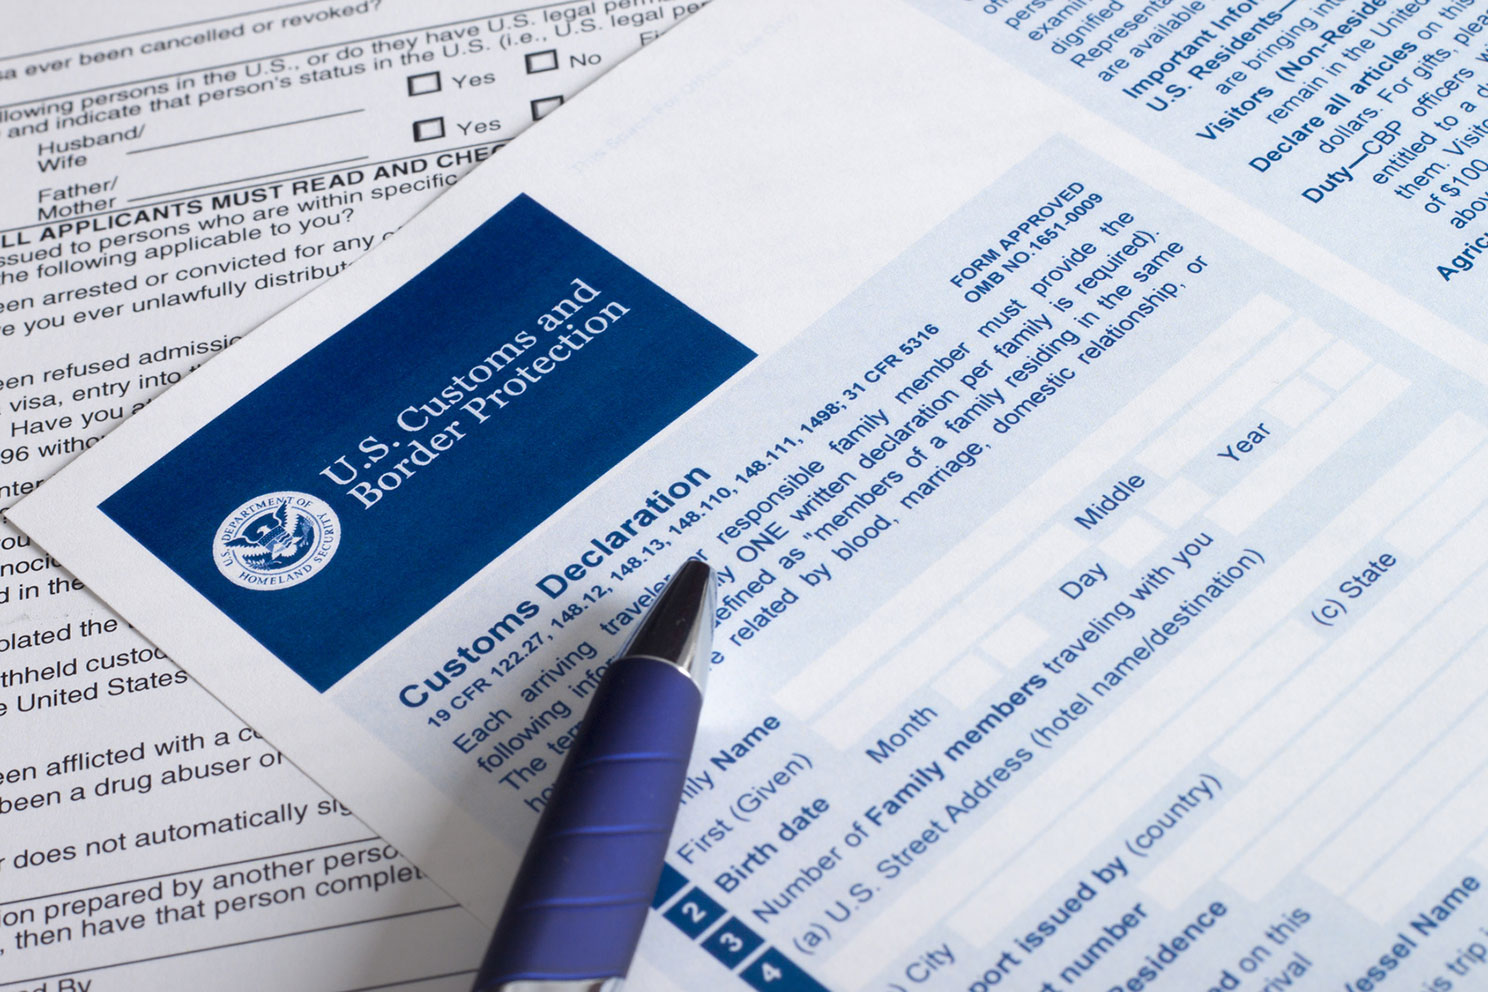 Customs and Border protection, what is a customs duty?